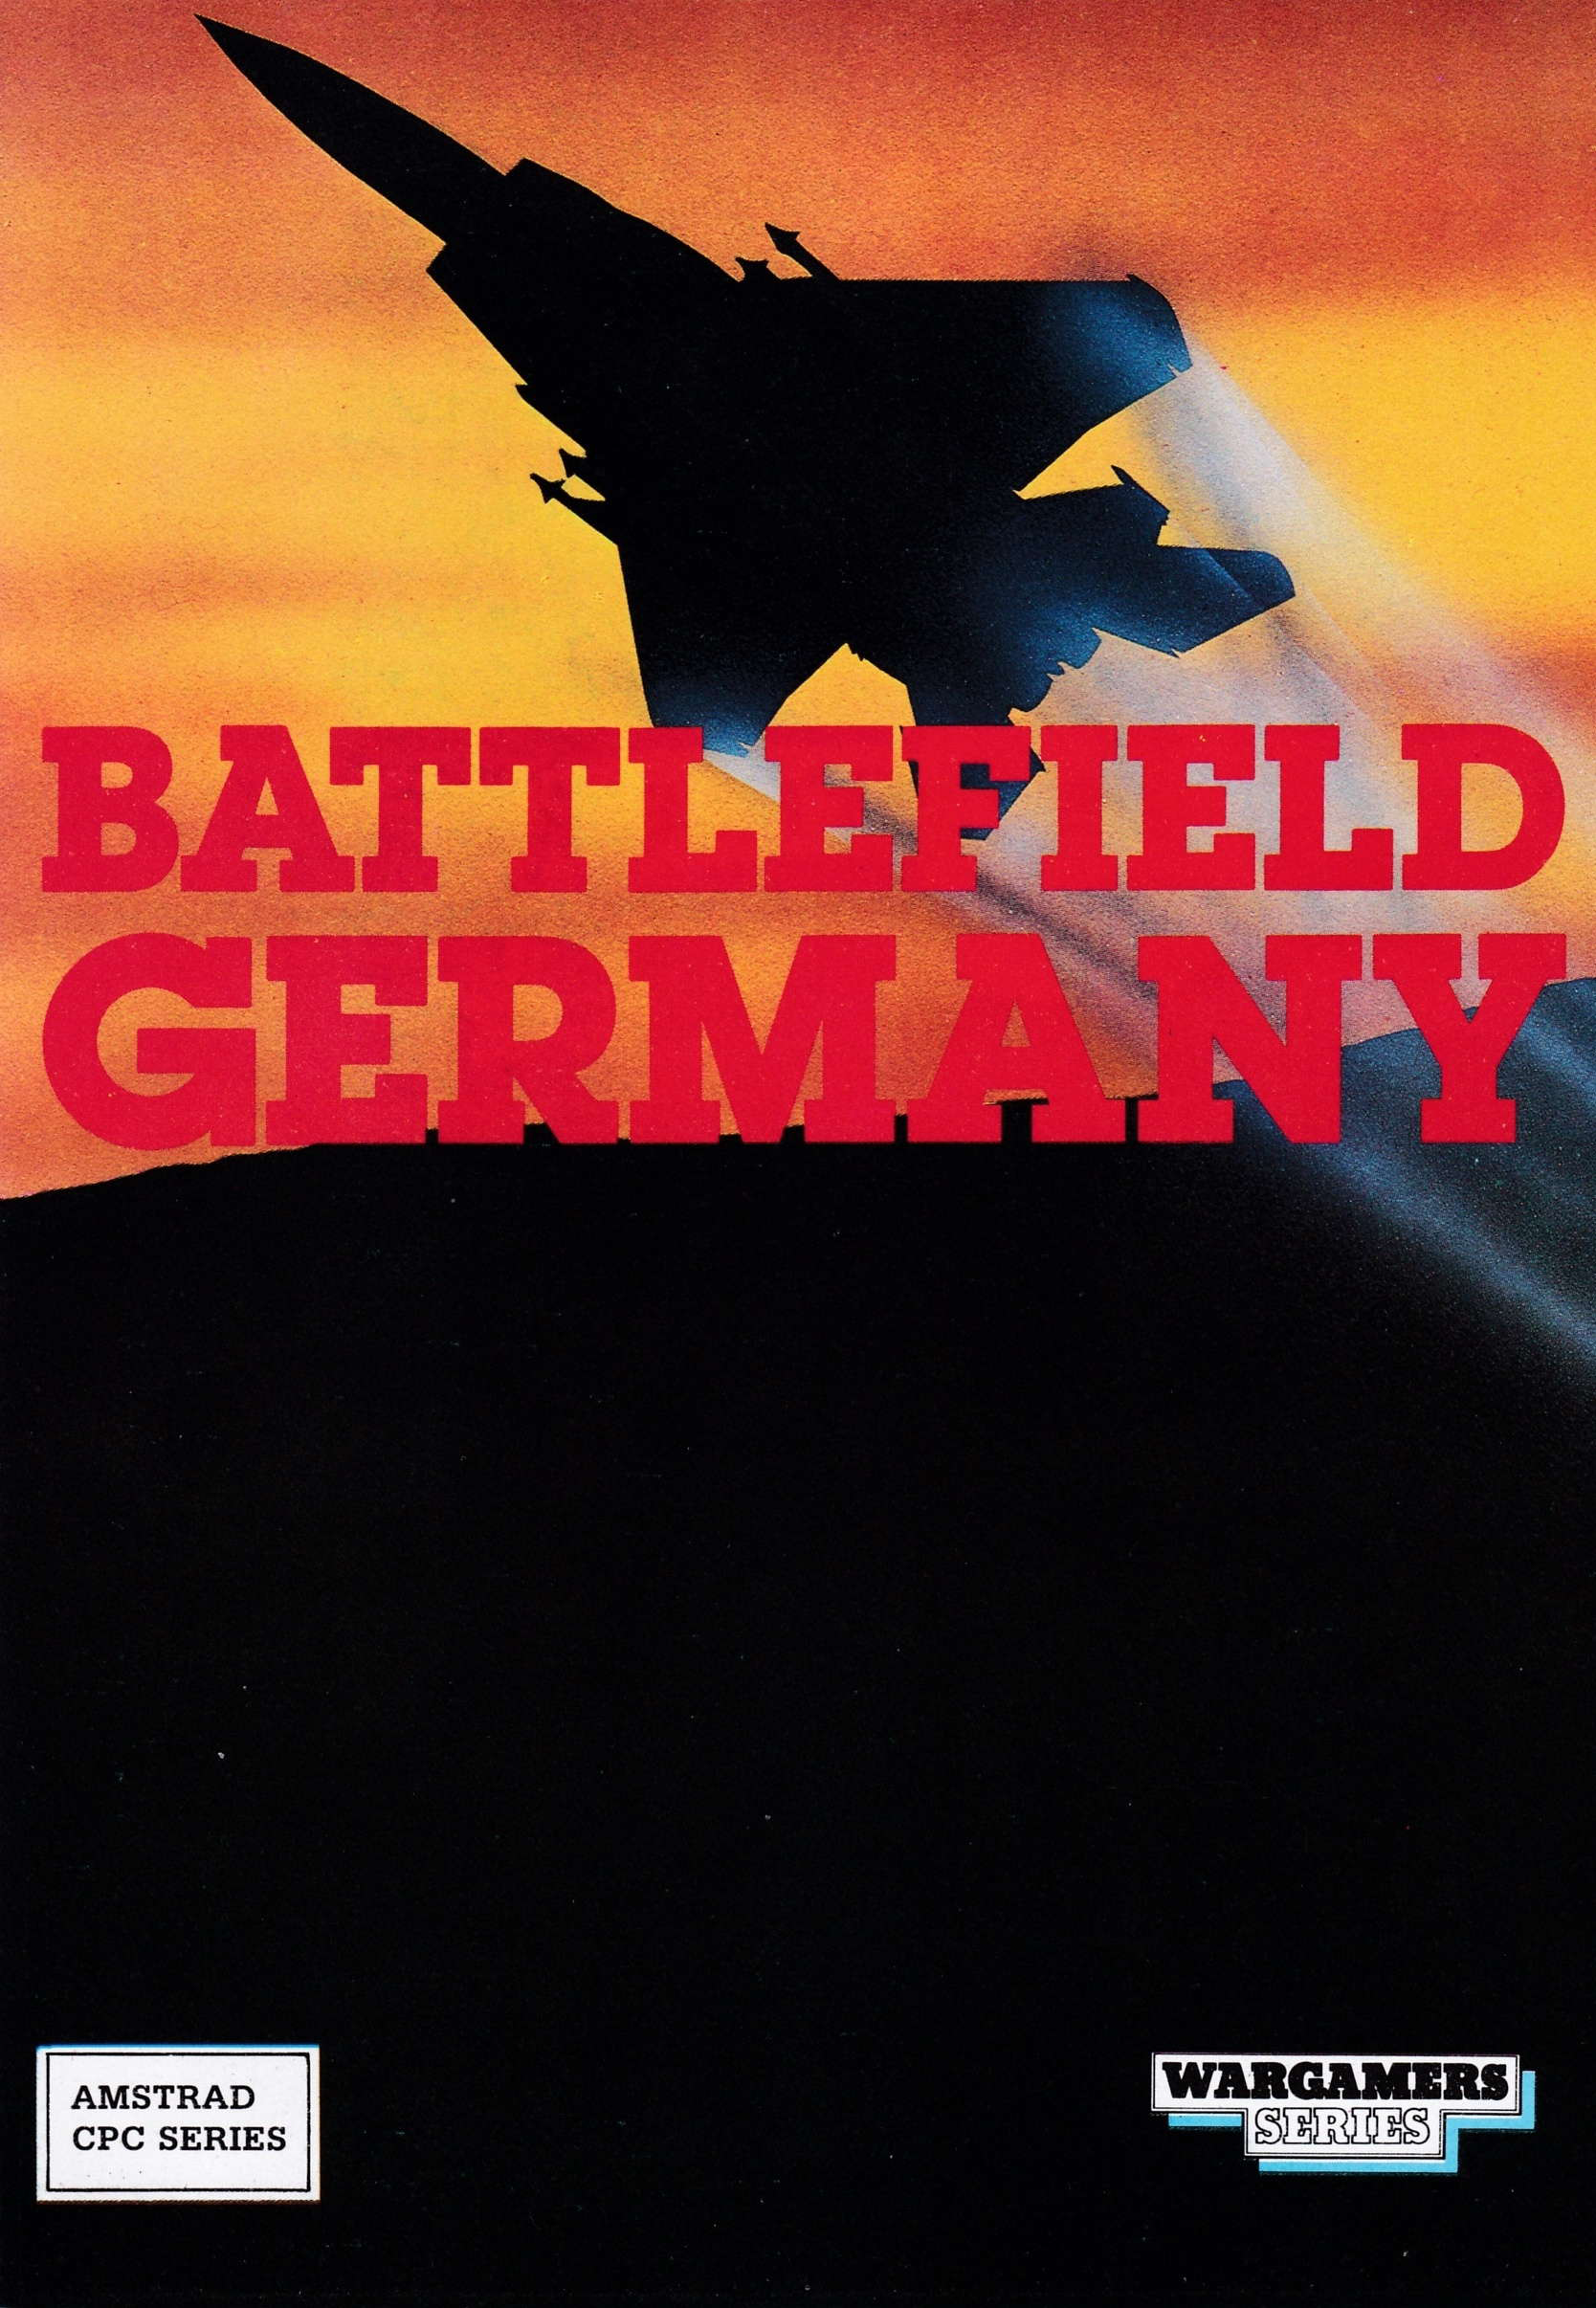 cover of the Amstrad CPC game Battlefield Germany  by GameBase CPC